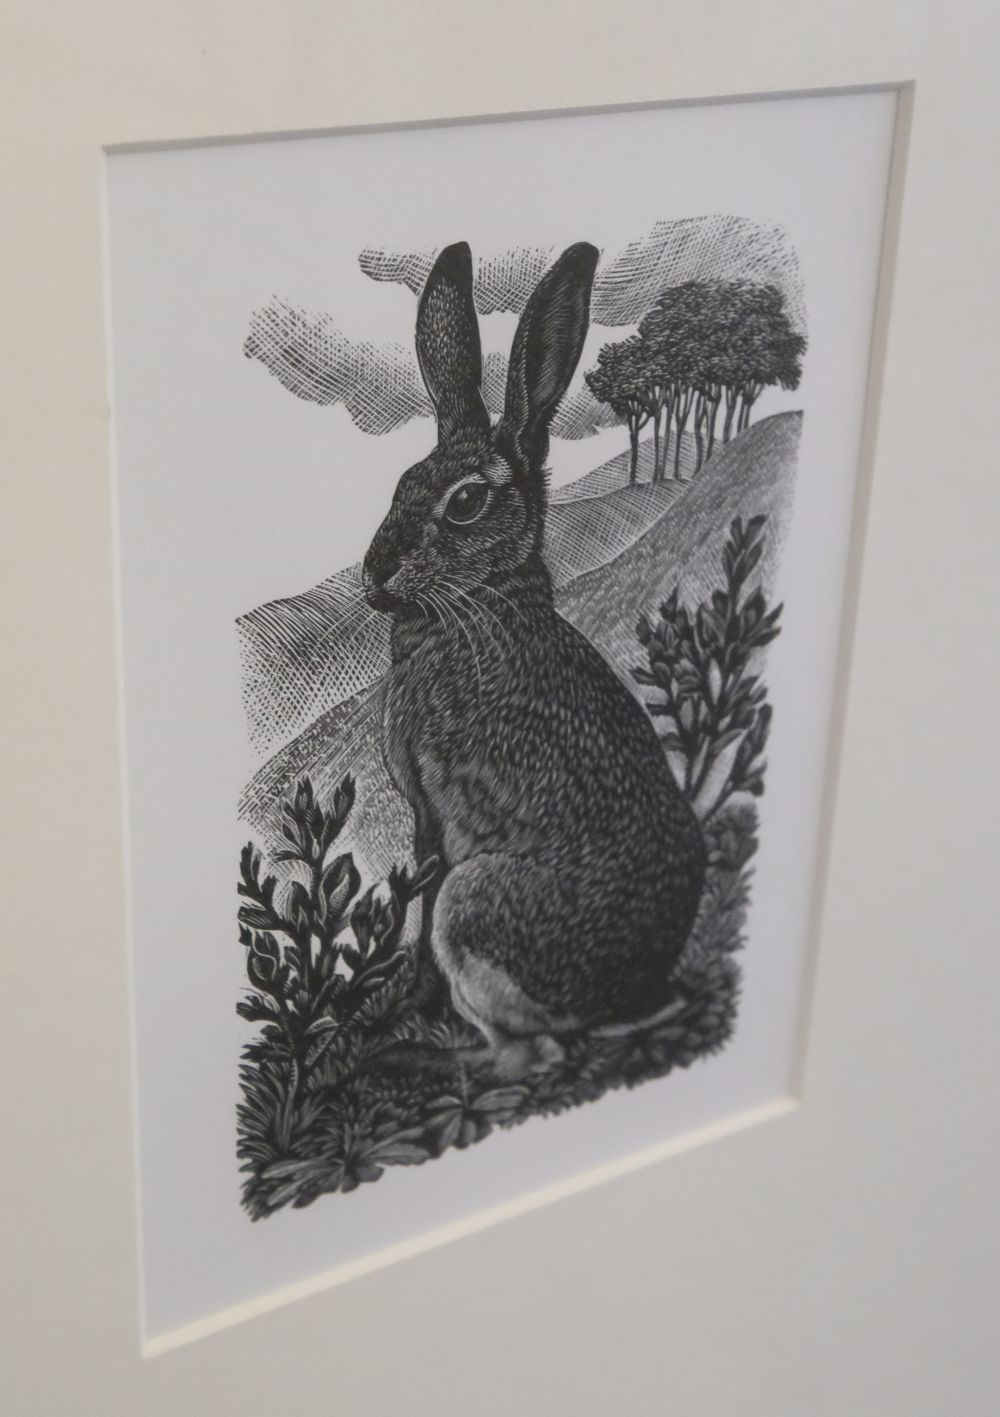 ARR * § Tunnicliffe (Charles Frederick1901-1978). Sitting Hare, 1949 - Image 5 of 5